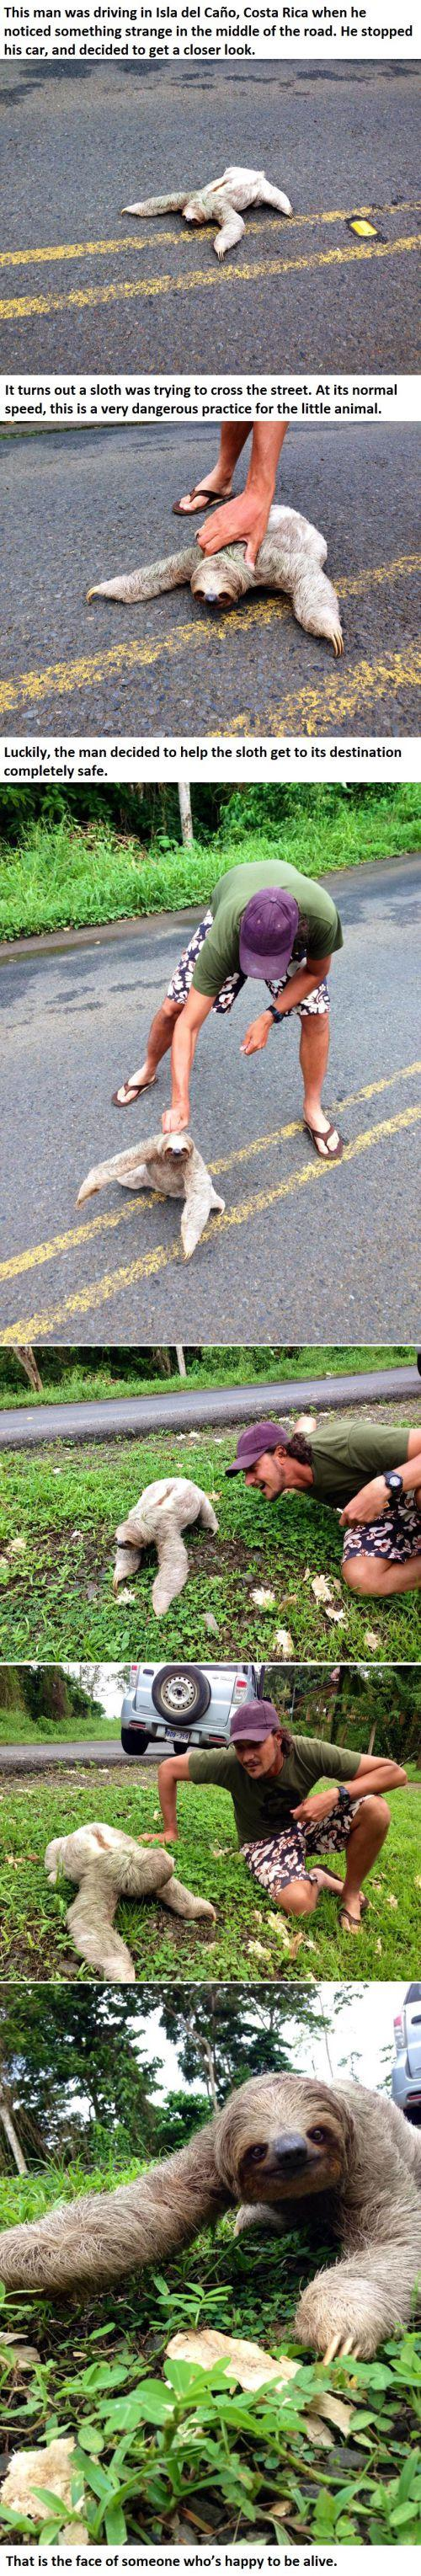 This Guy Was Driving When He Noticed Something Strange In The Road. Look At What He Found...